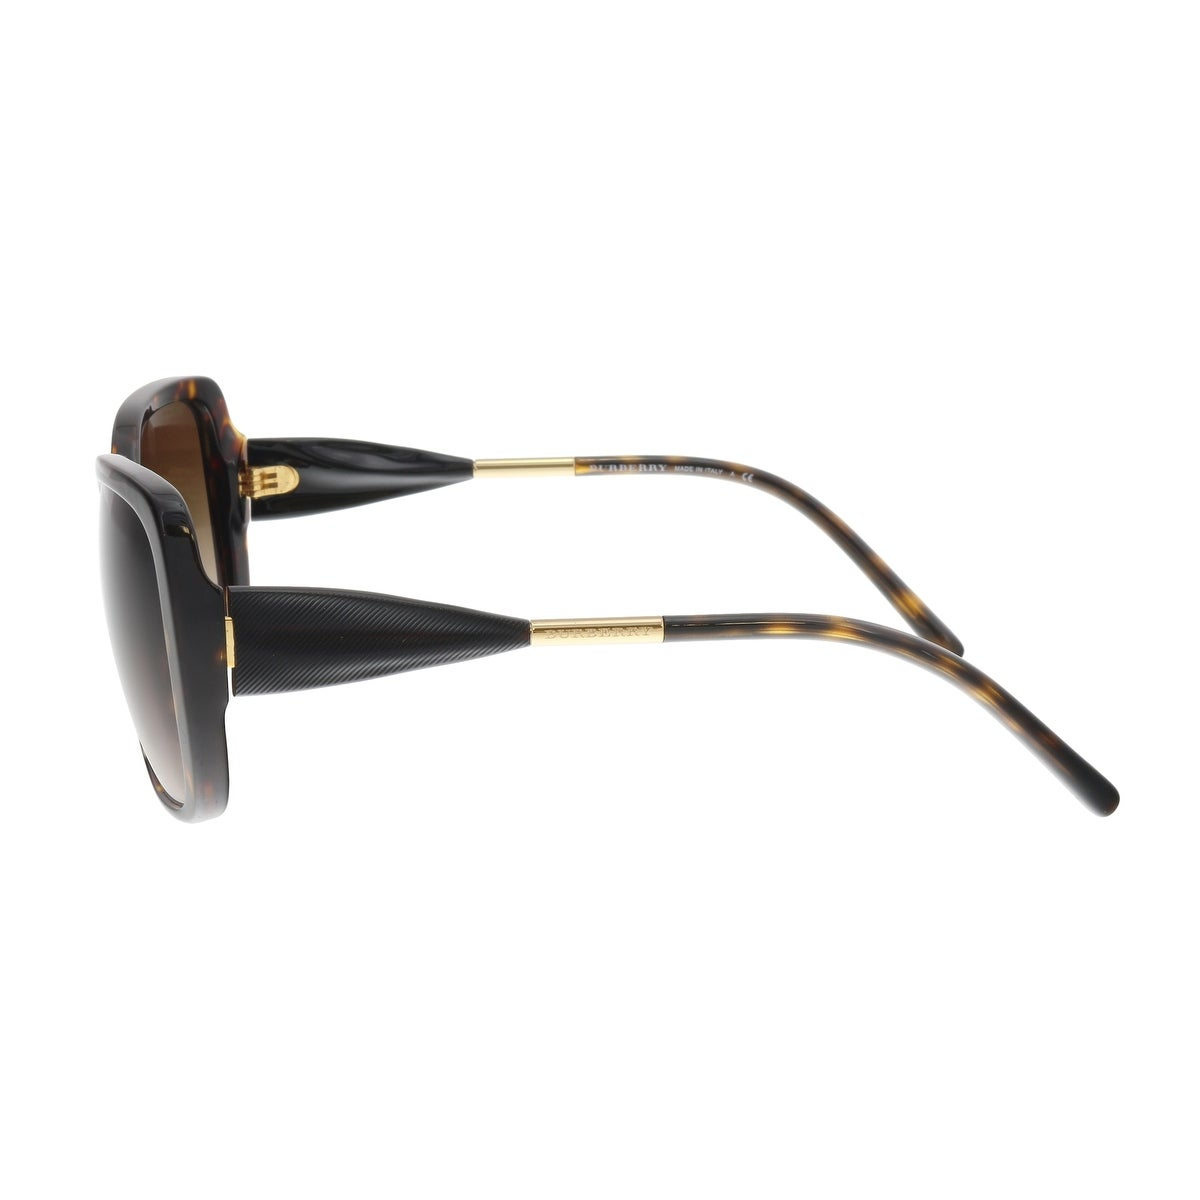 d8683643a963 Shop Burberry BE4192F 3002 13 Black Brown Square Sunglasses - 56-17-140 -  Free Shipping Today - Overstock.com - 19881349